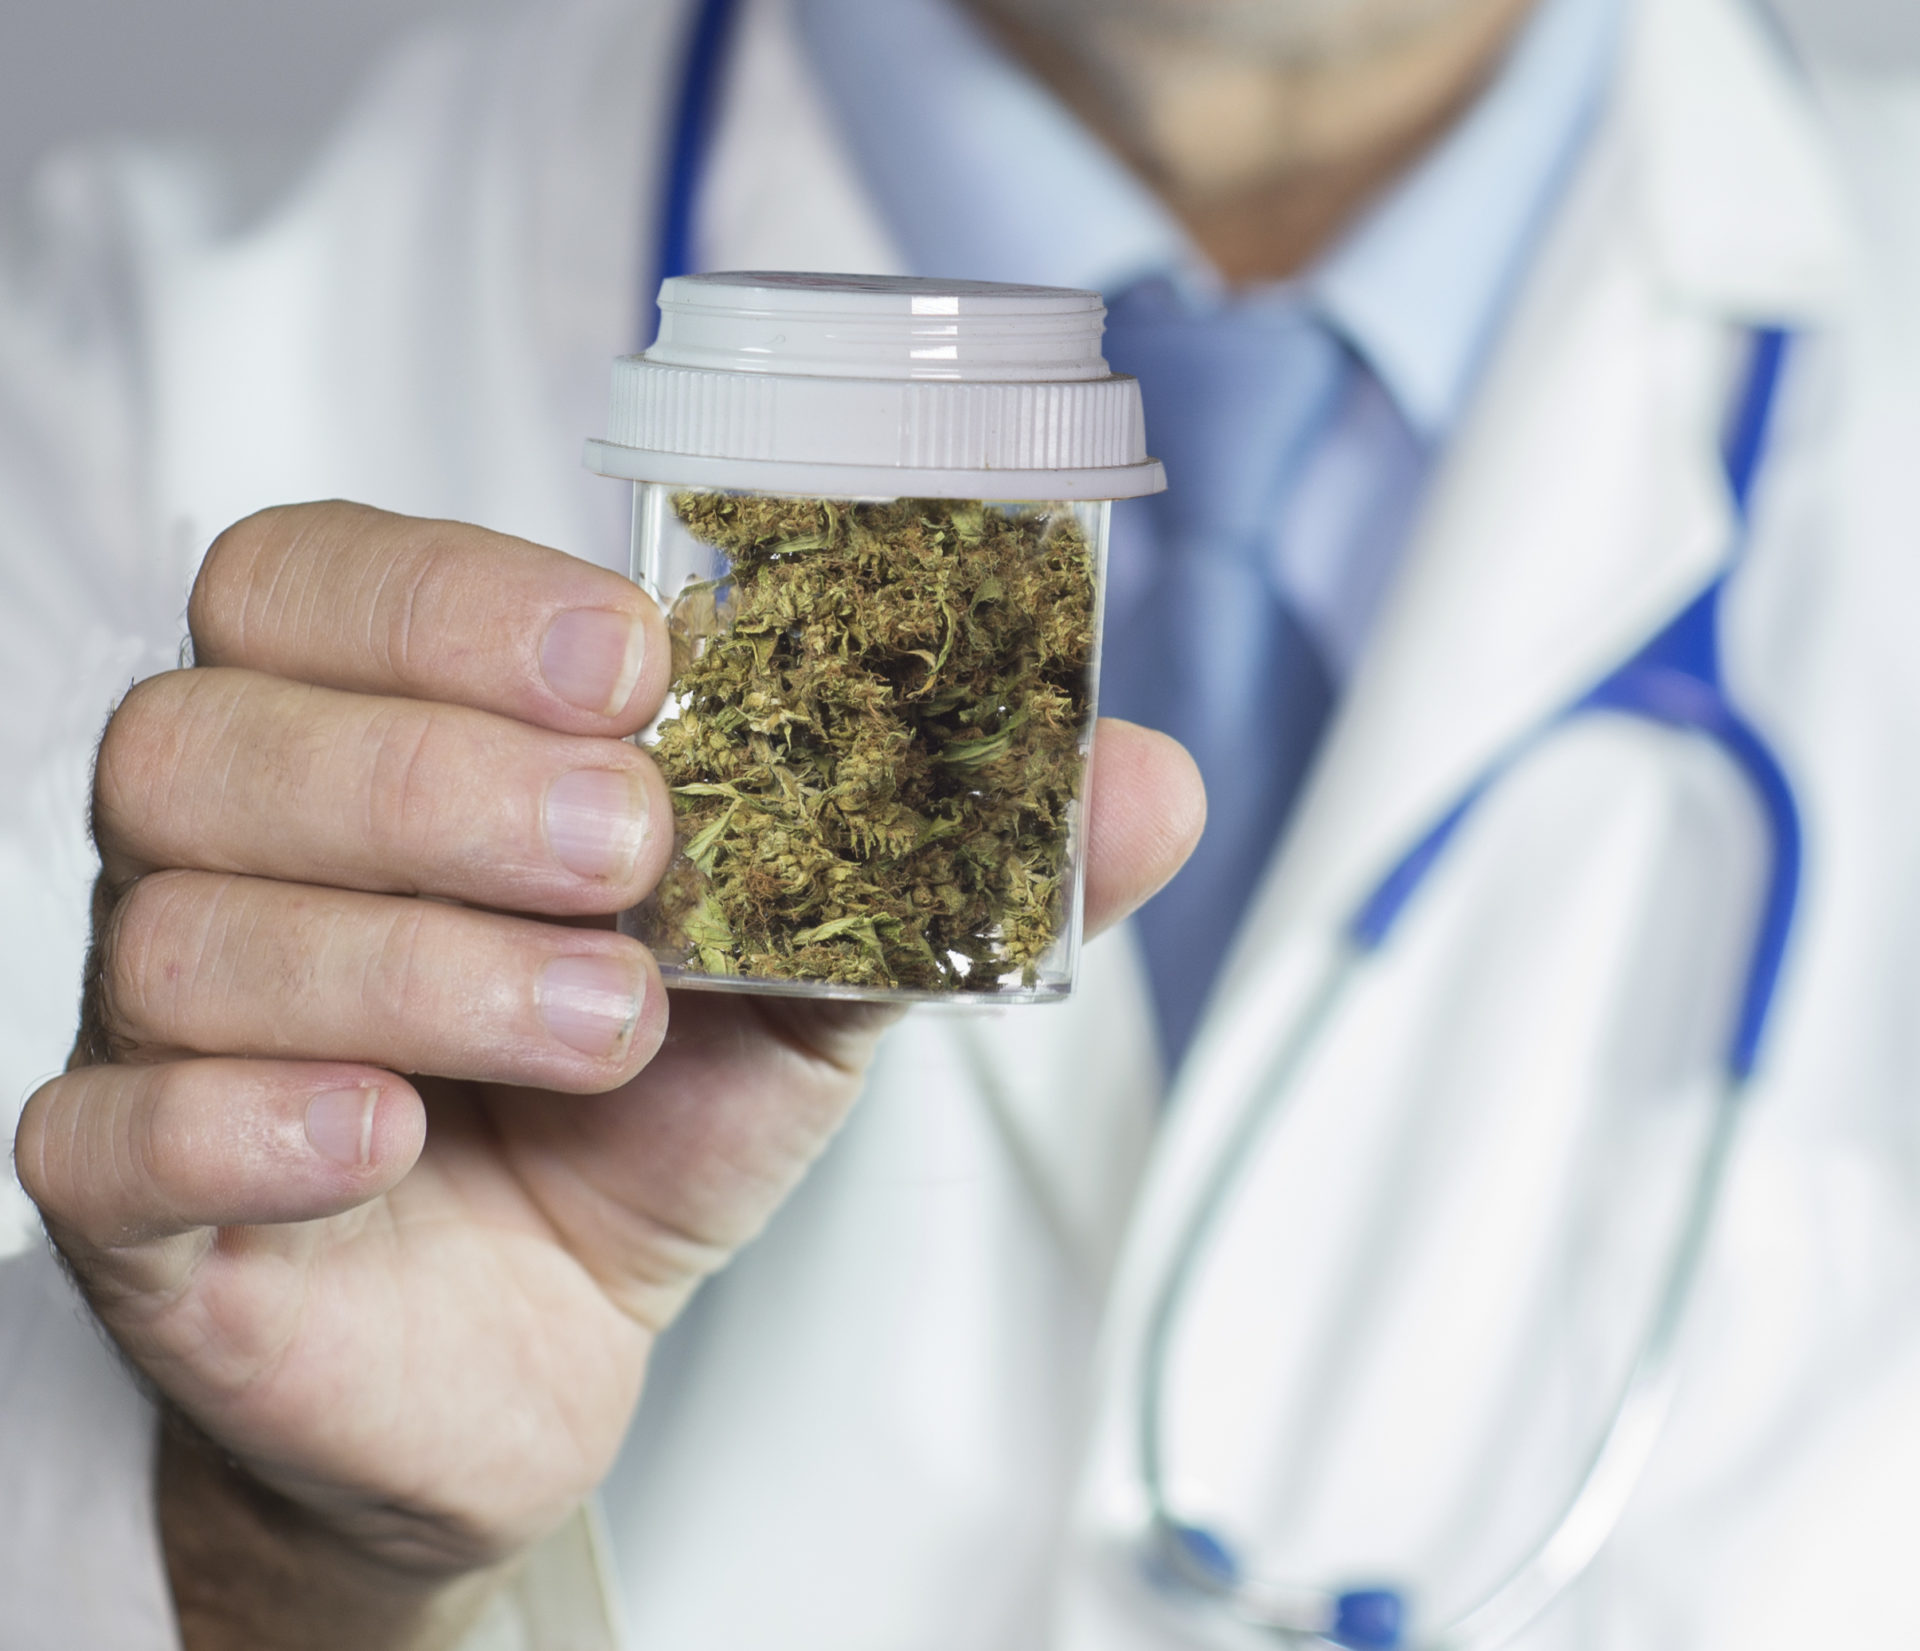 Medical Marijuana: Current Status and CME Requirements